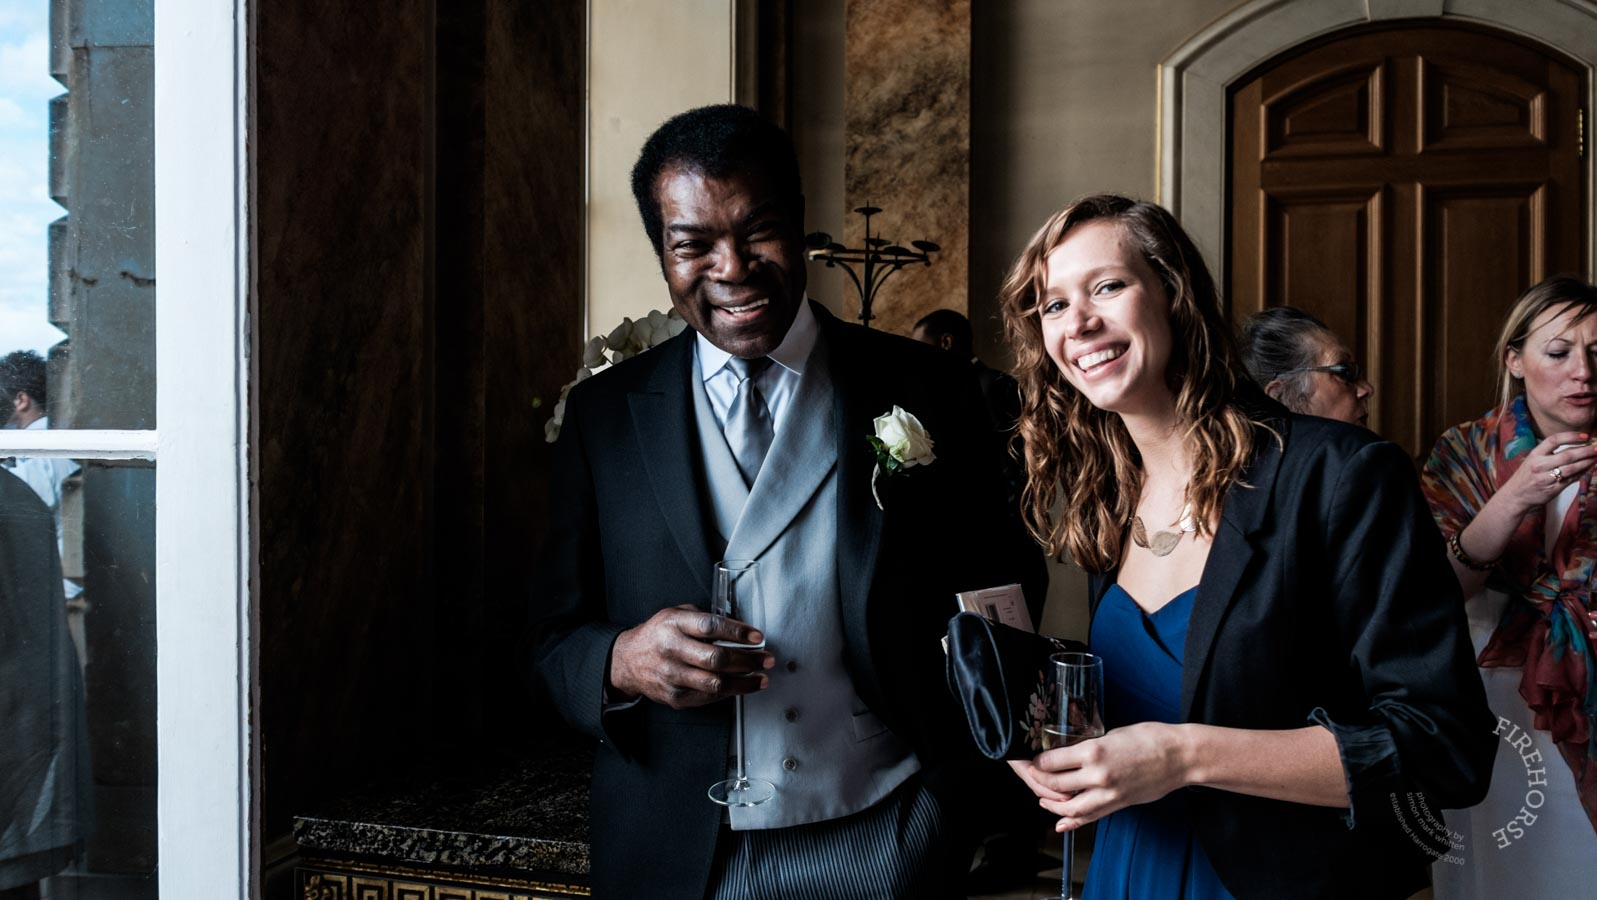 Castle-Howard-Wedding-Photography-143